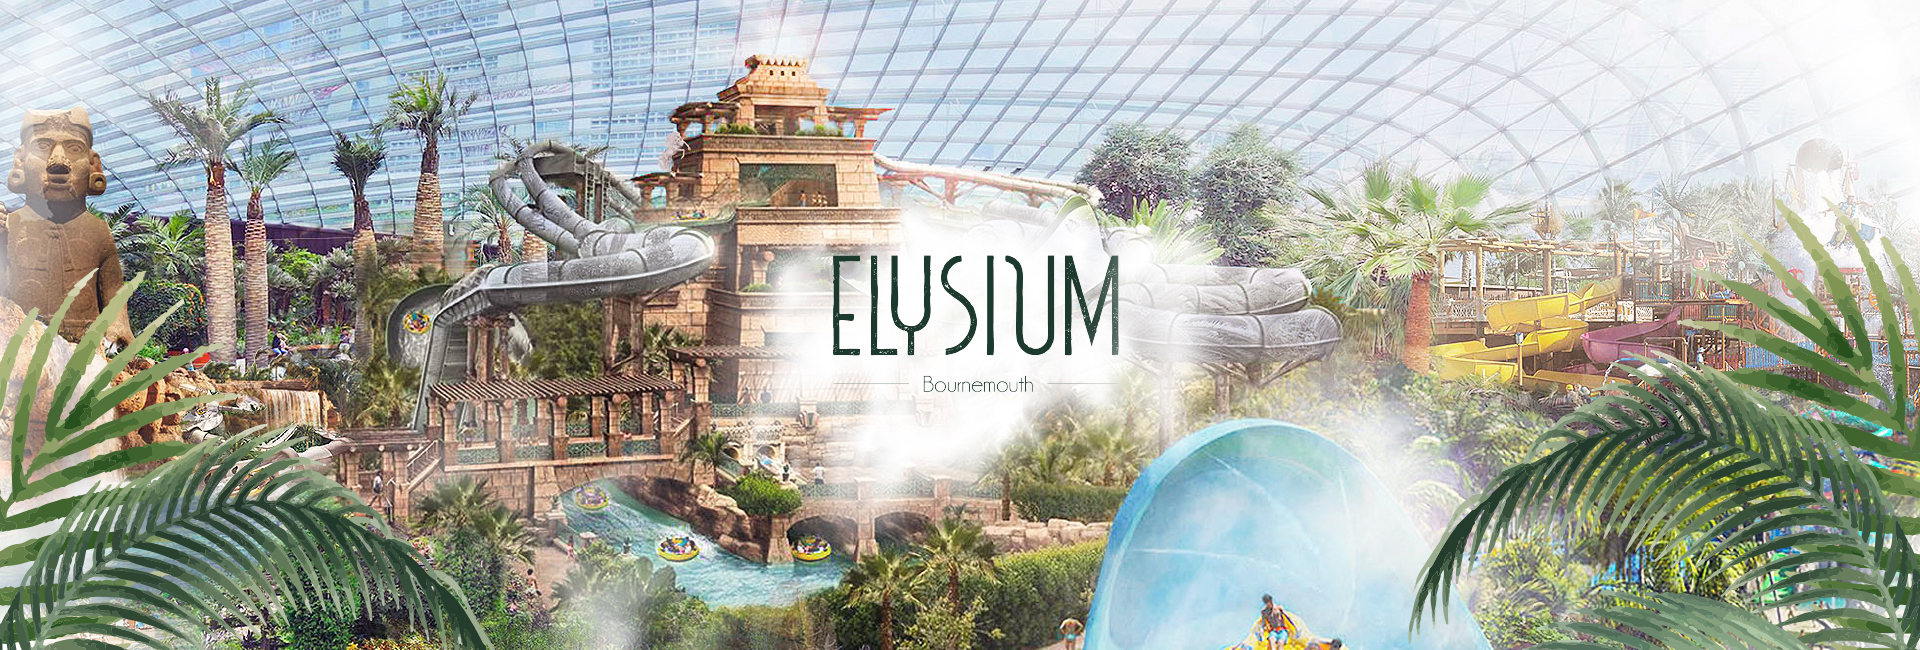 Digital Storm design and launch website for £75 million waterpark that could be opening in Bournemouth in 2023.